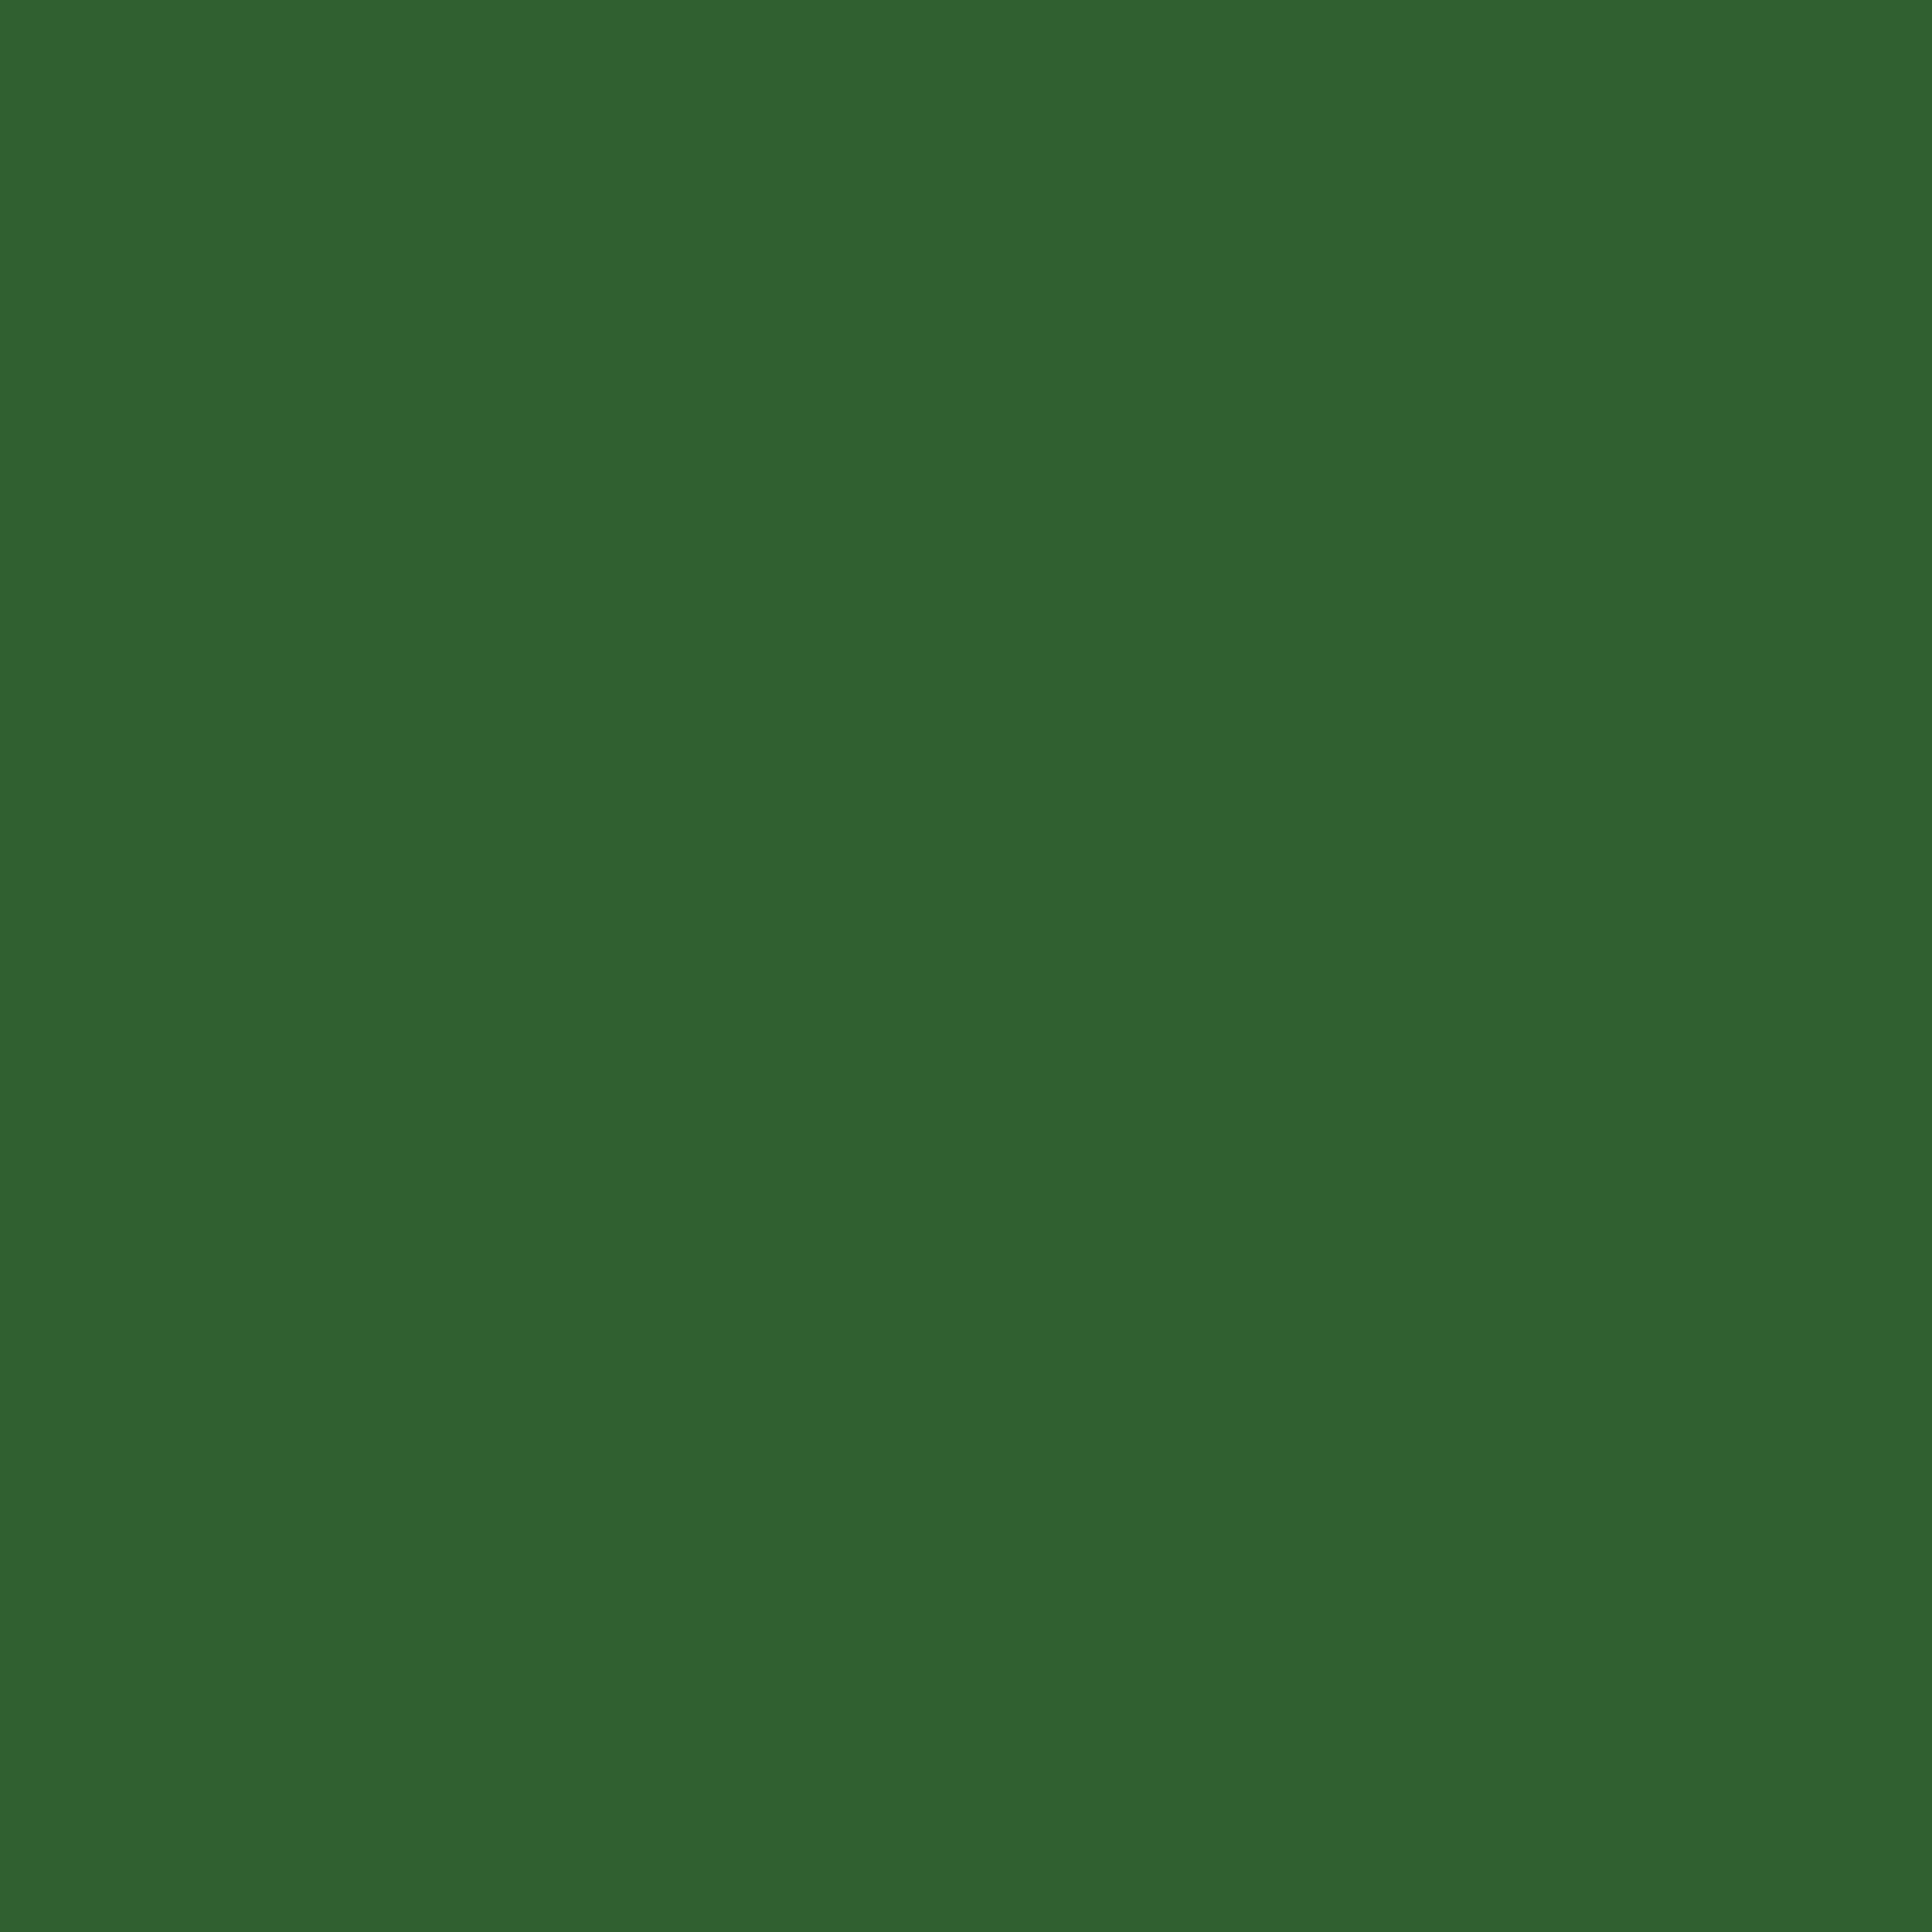 2048x2048 Mughal Green Solid Color Background